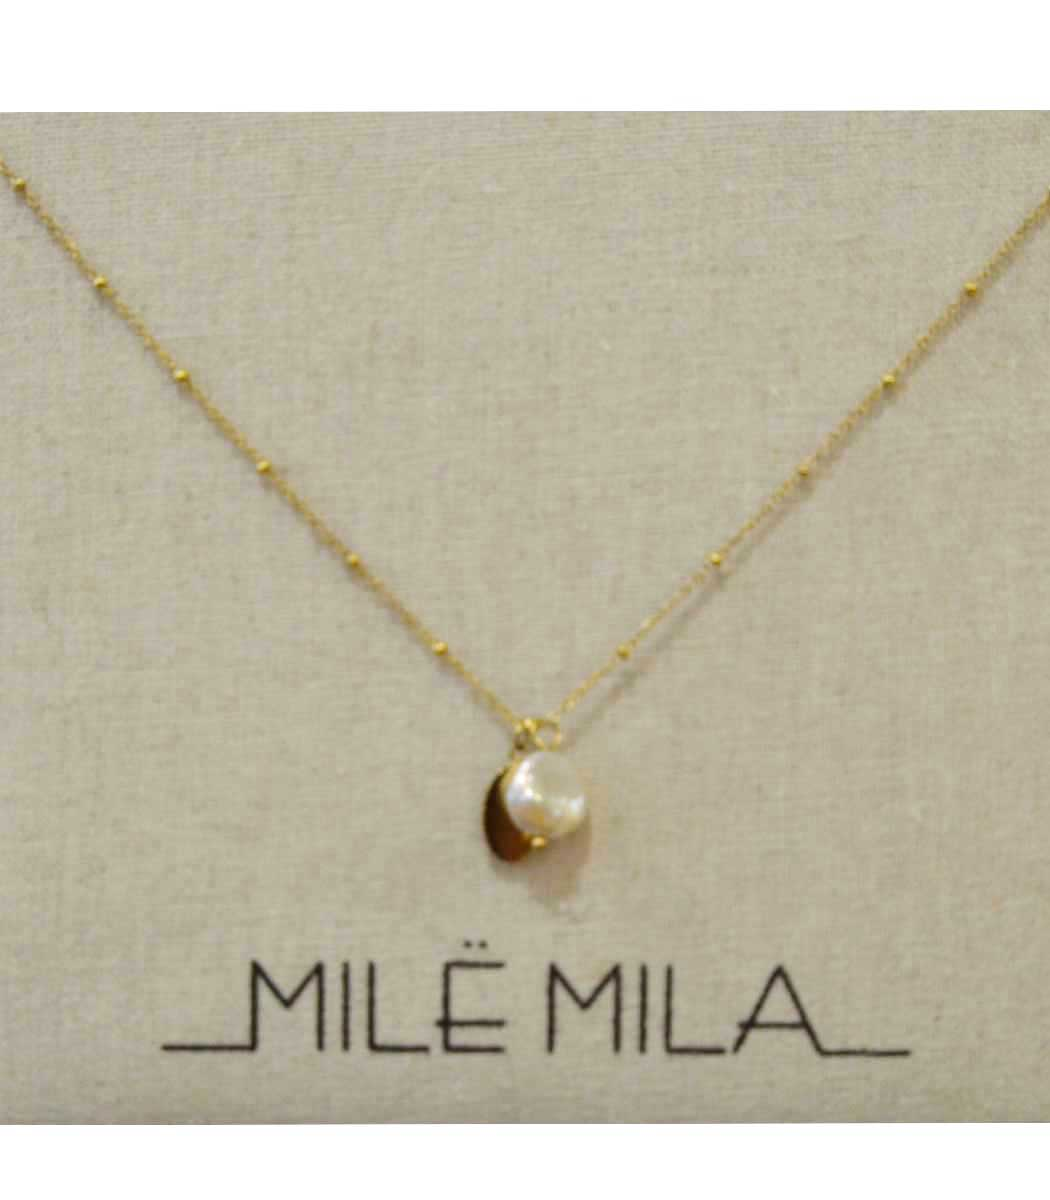 Stainless steel gold mini pearl charm necklace